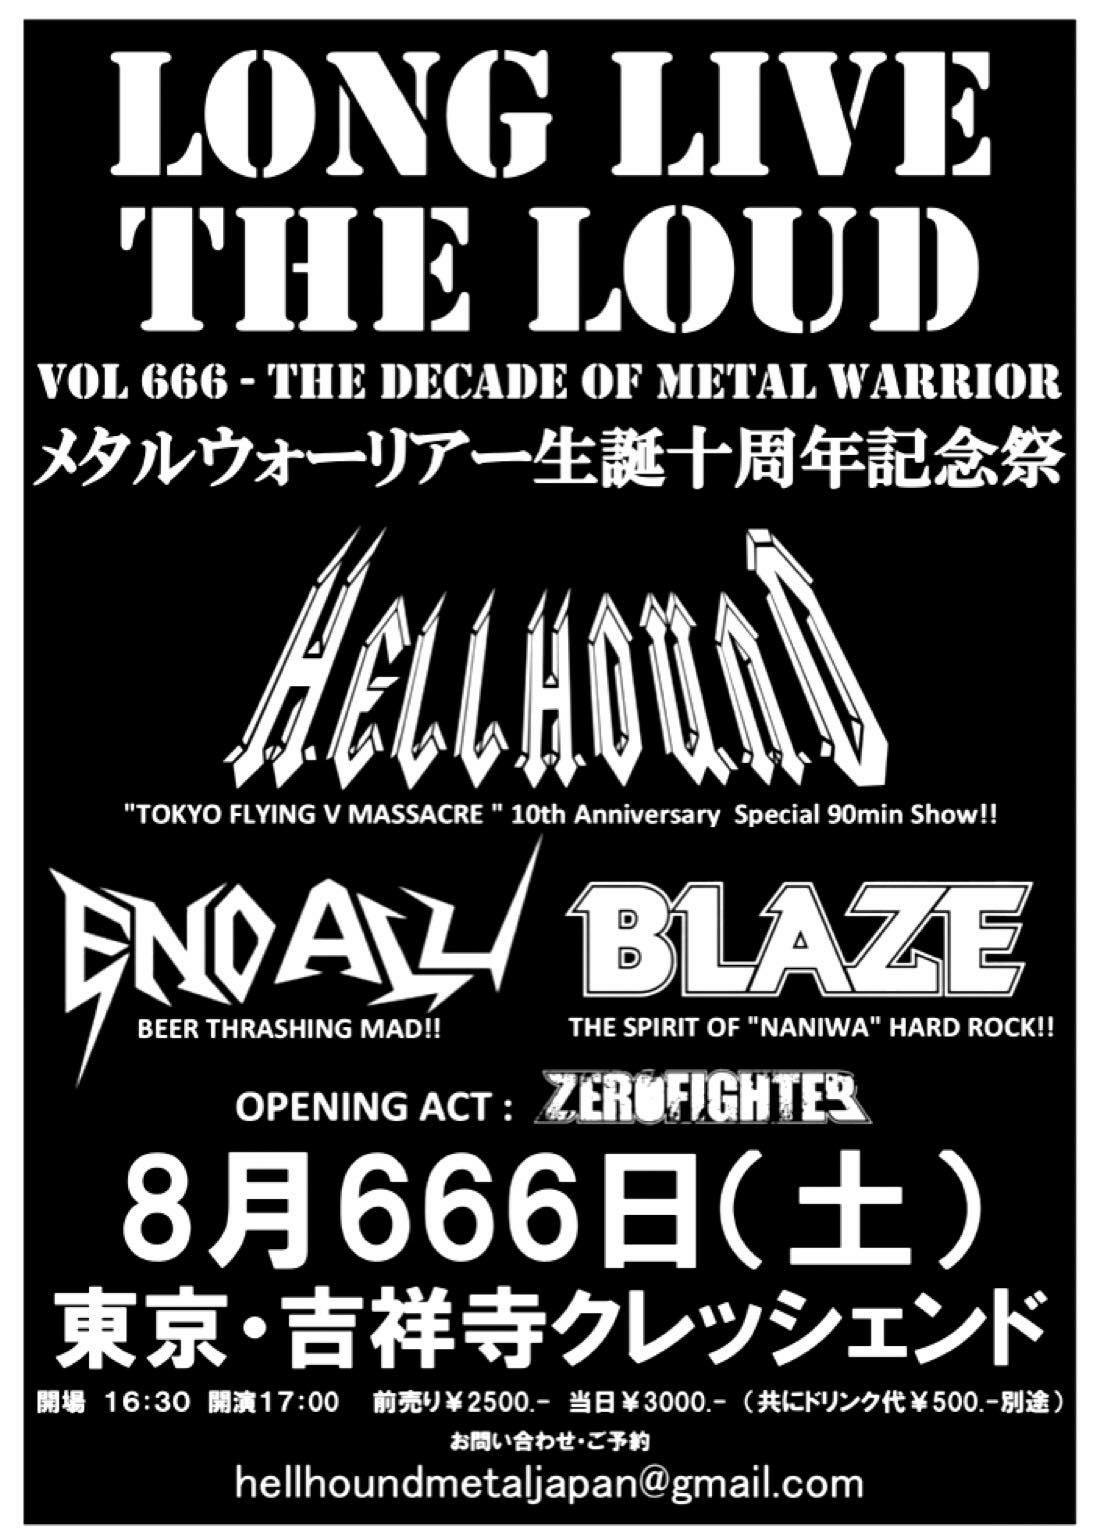 LONG LIVE THE LOUD vol.666